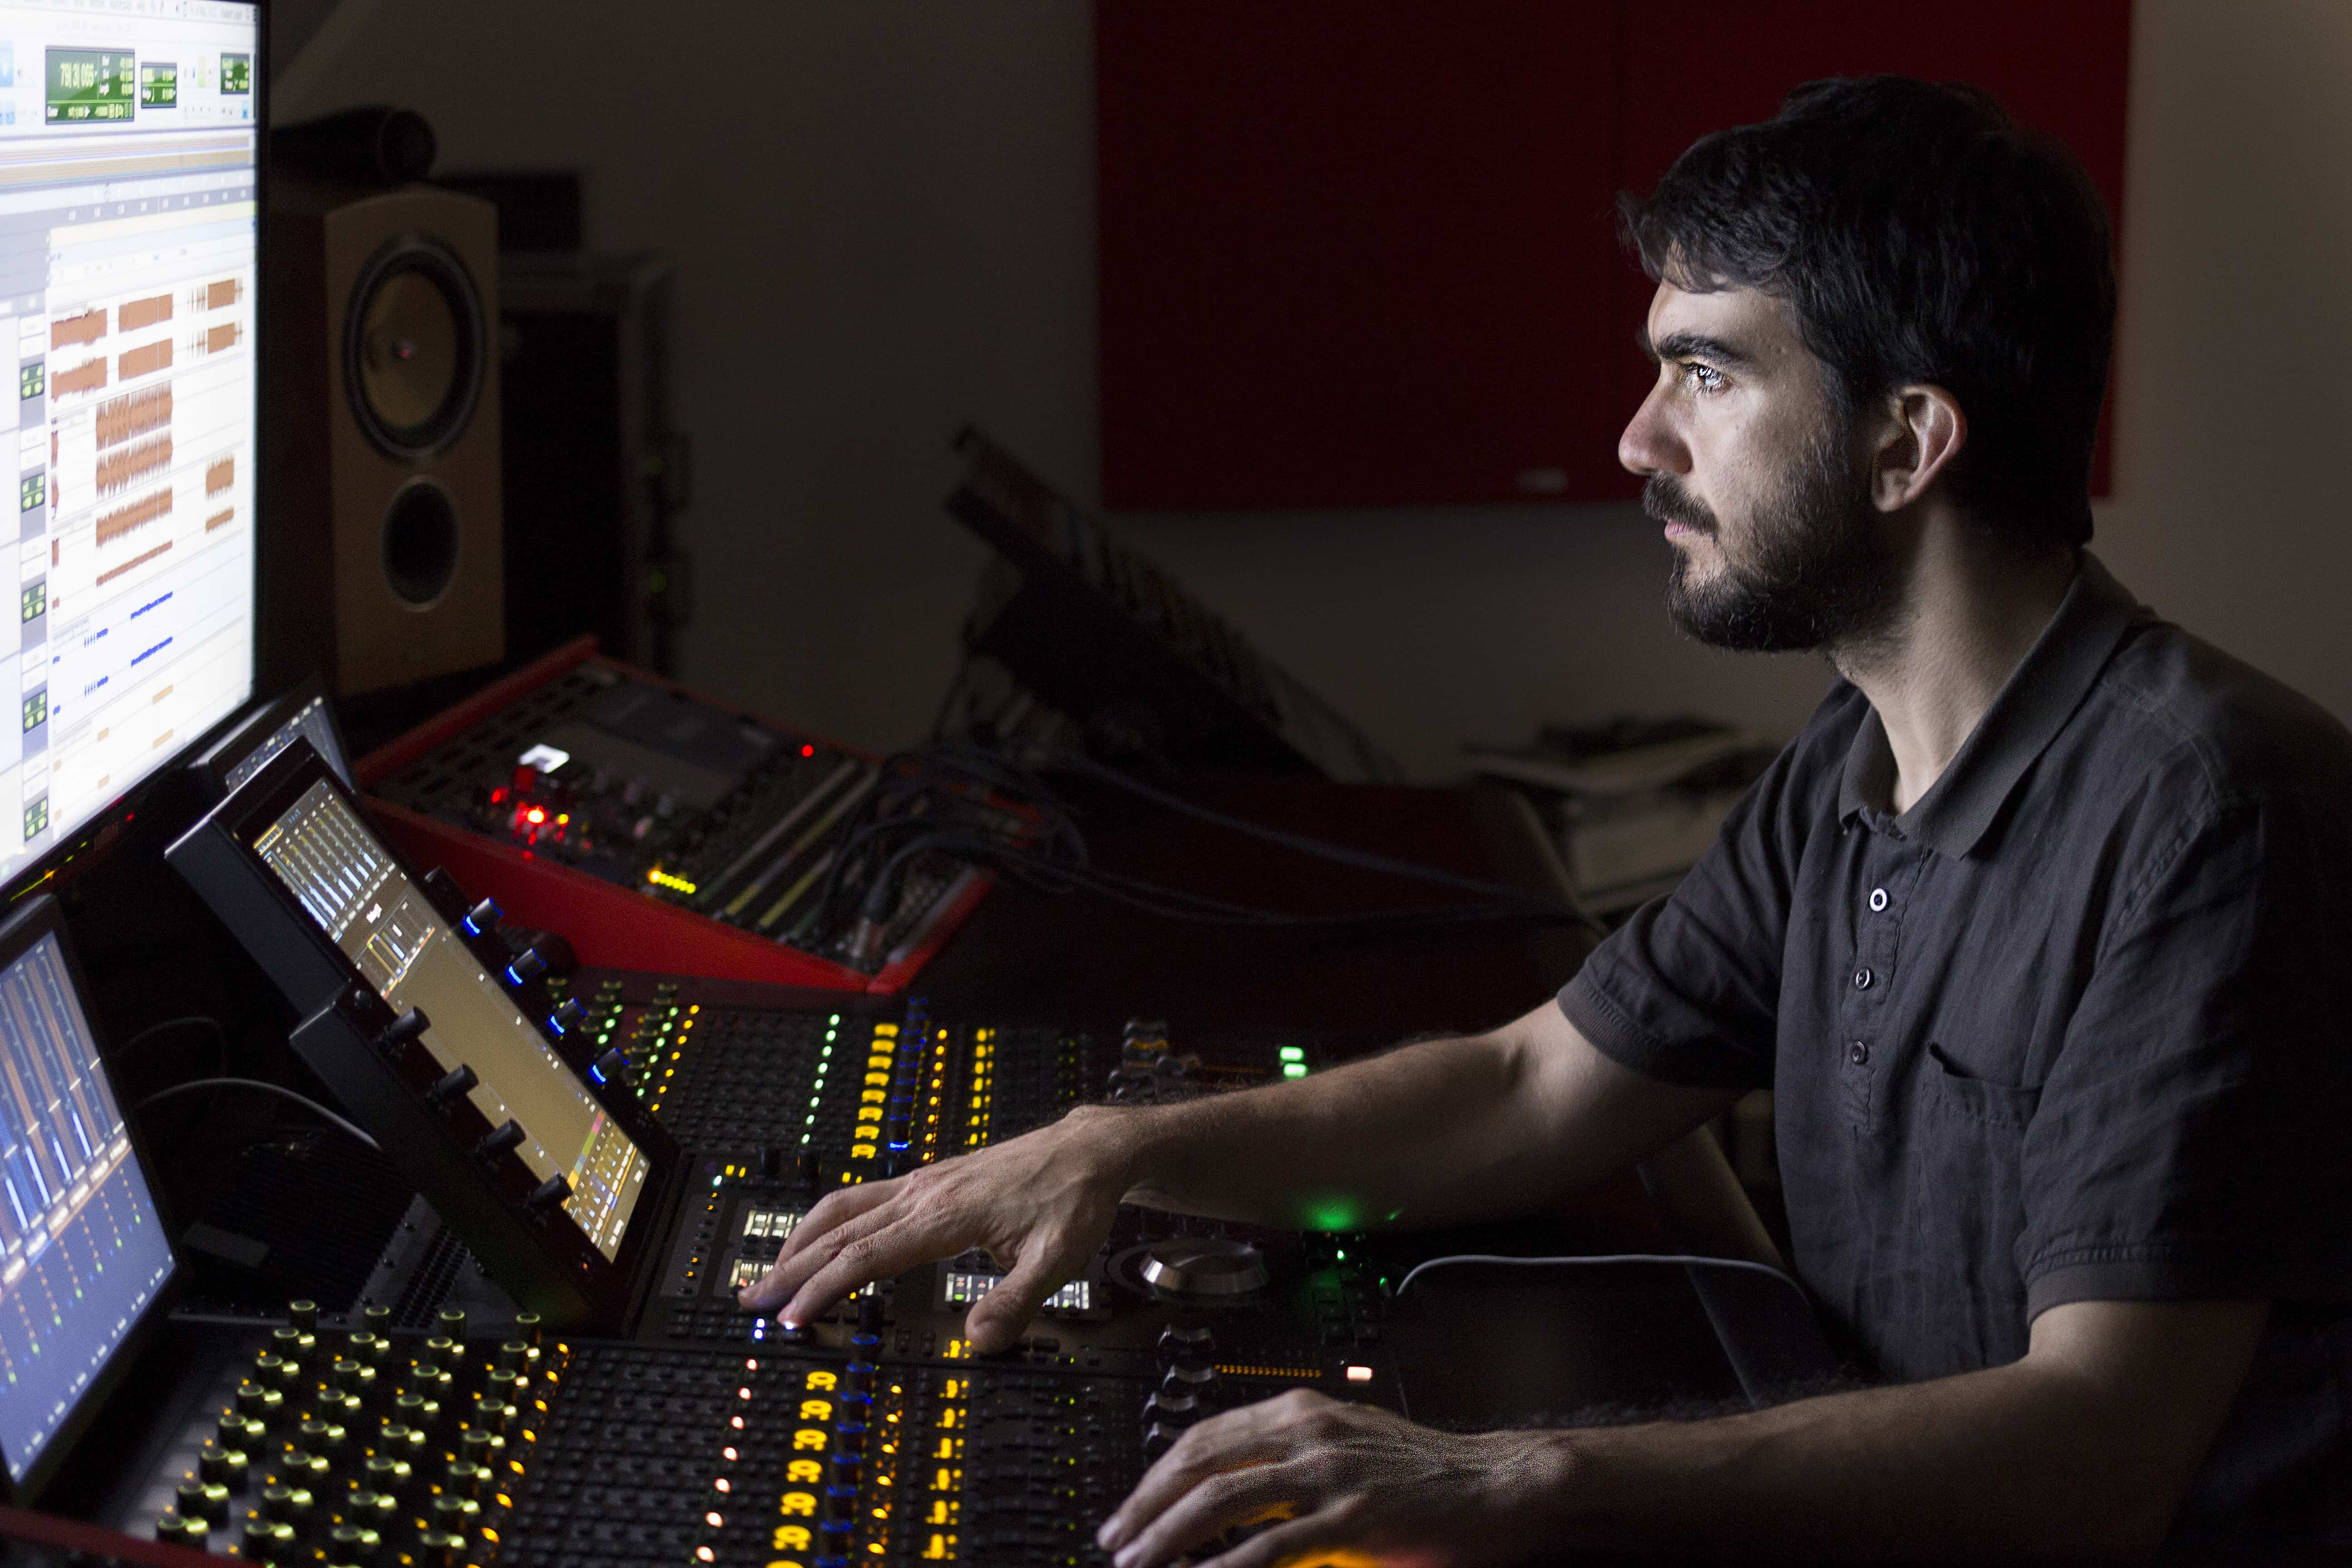 Carlos Bricio working at our Avid S6 M40 Console